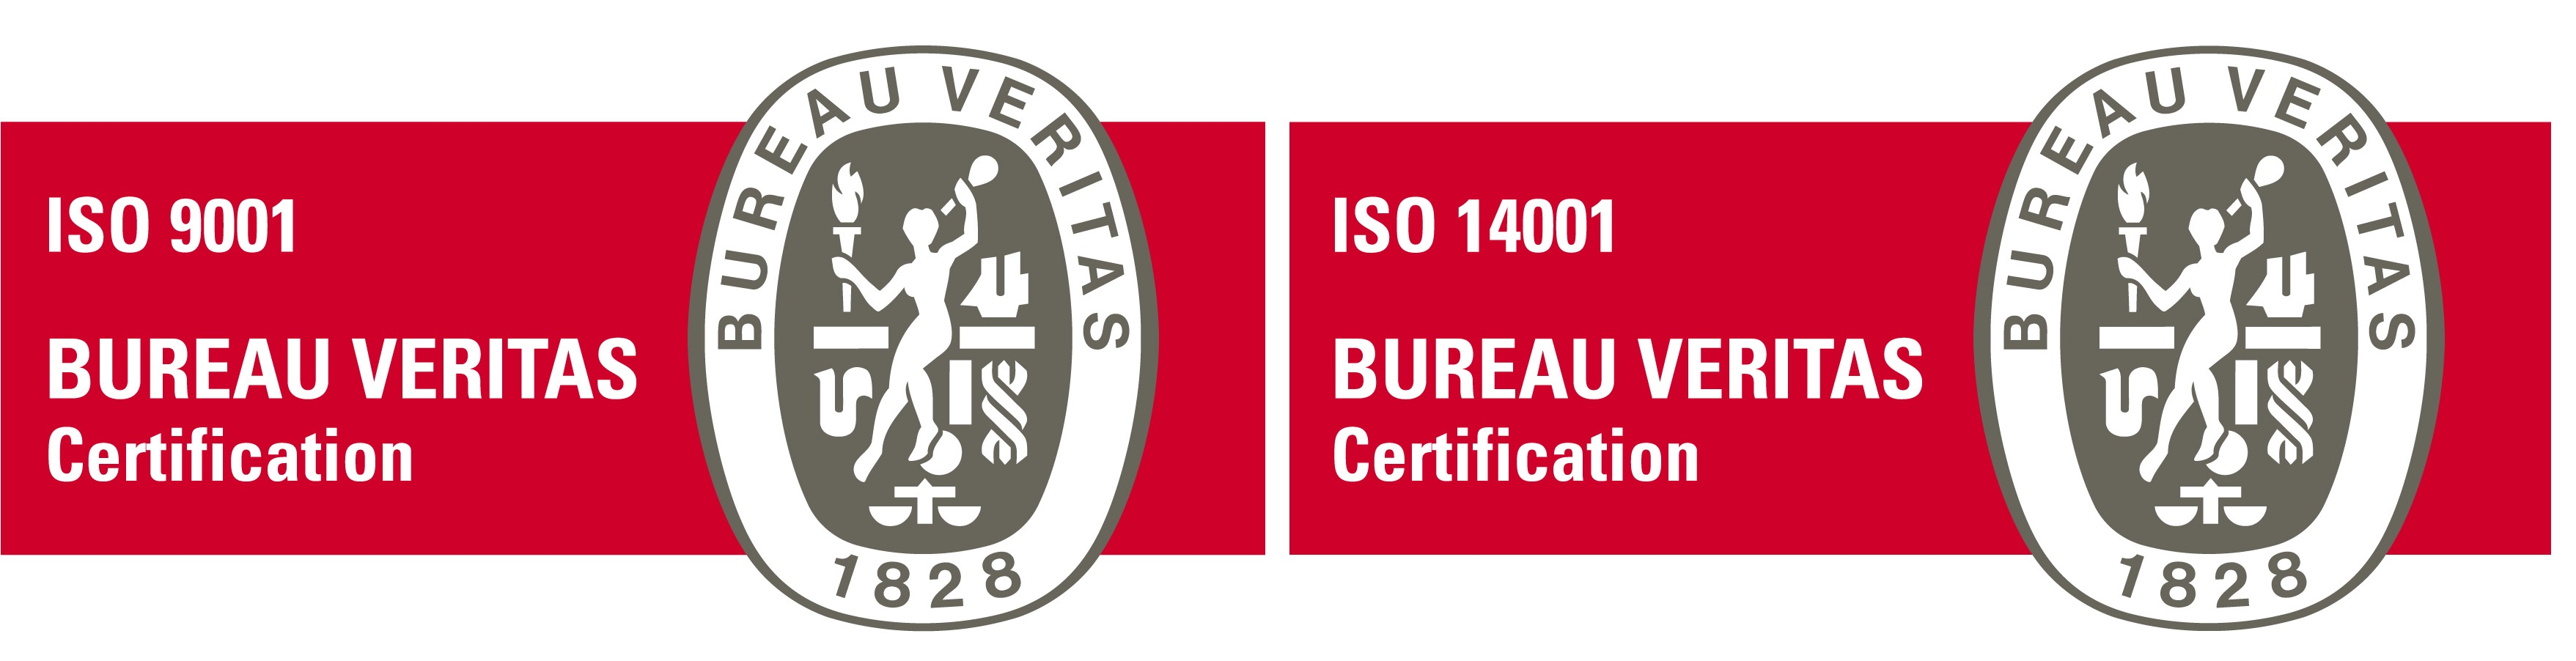 BV_Certification_ISO900114001